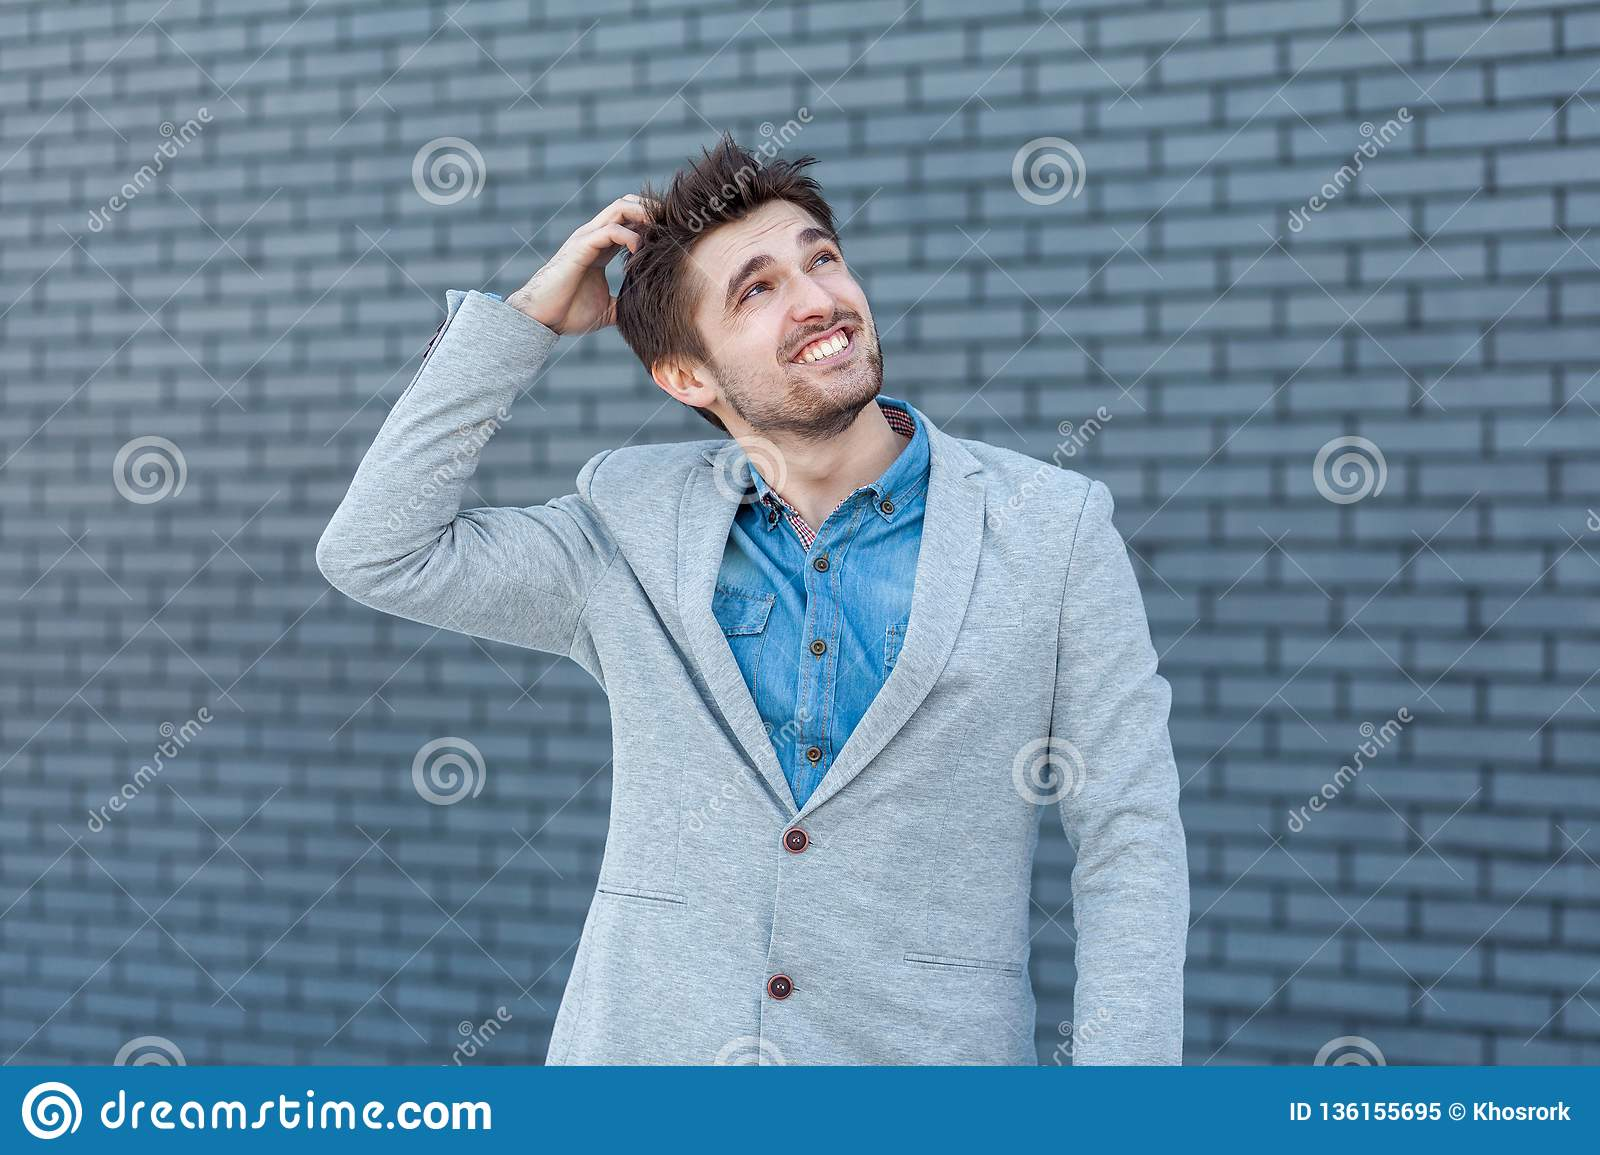 6d067aa84481 Quizzical Man Stock Images - Download 359 Royalty Free Photos